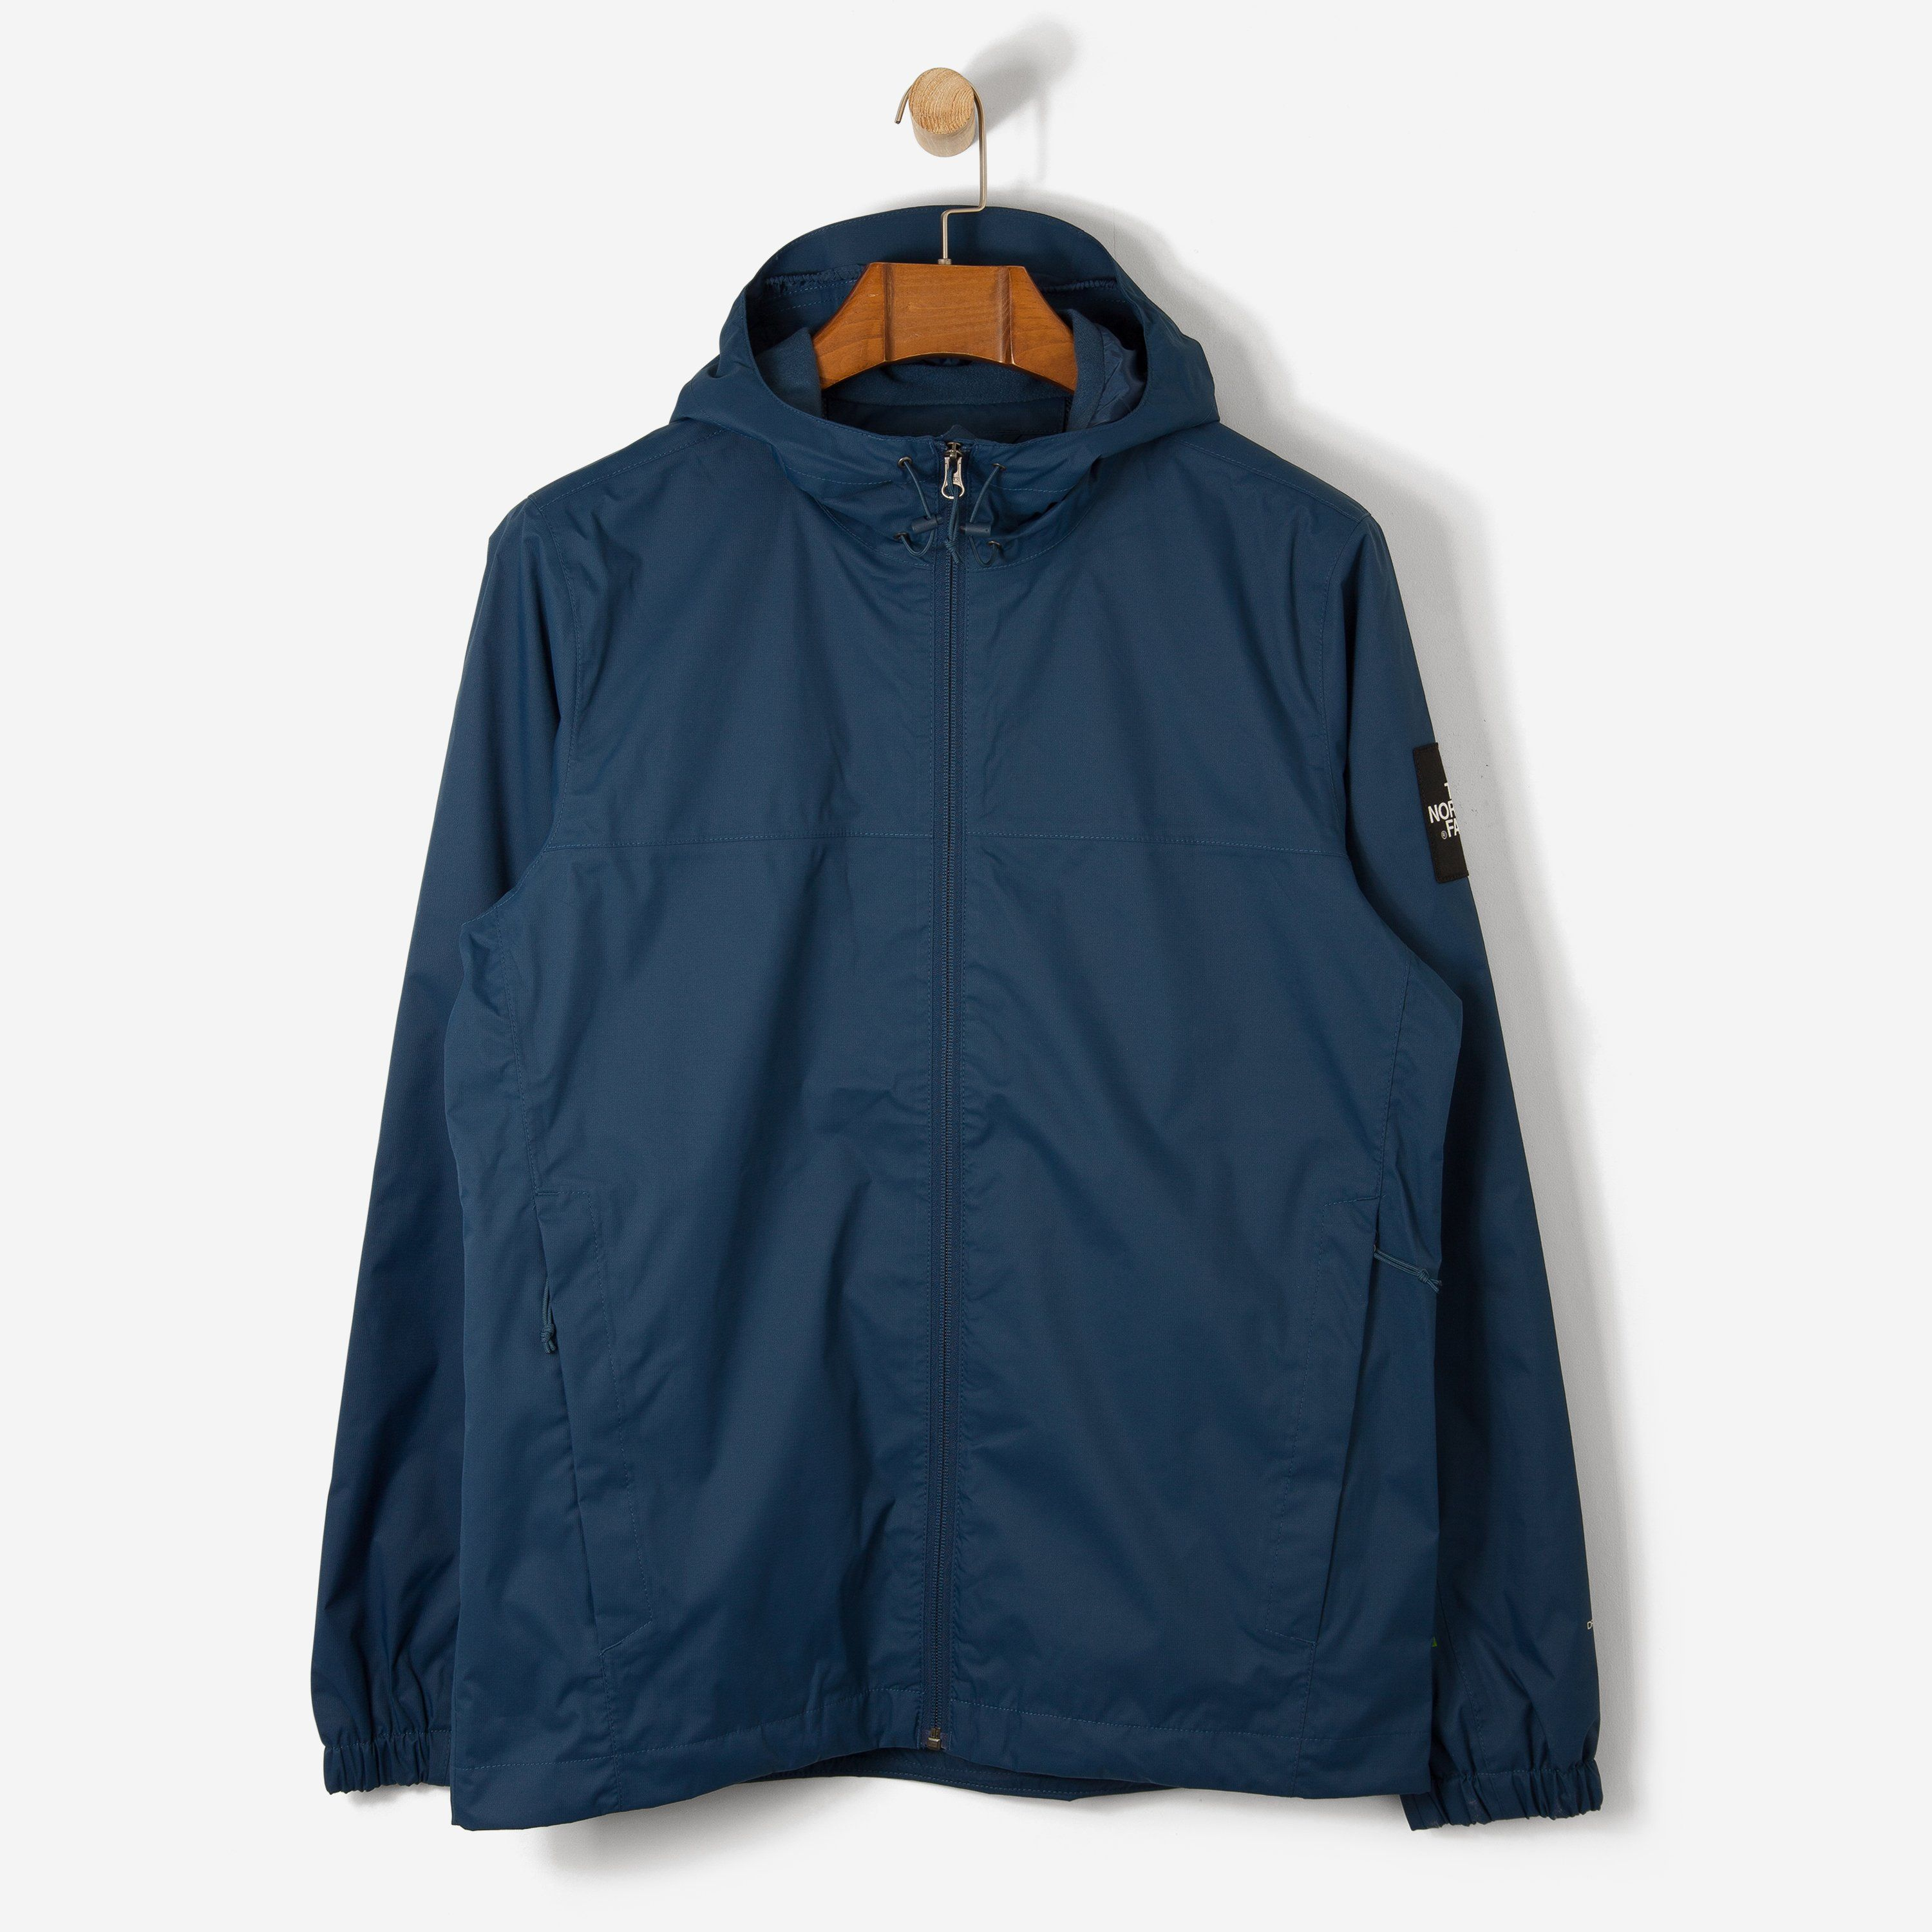 8429f3f57 The North Face Black Label Mountain Q Jacket Blue Wing Teal Free SHIPPING  OVER £50.00